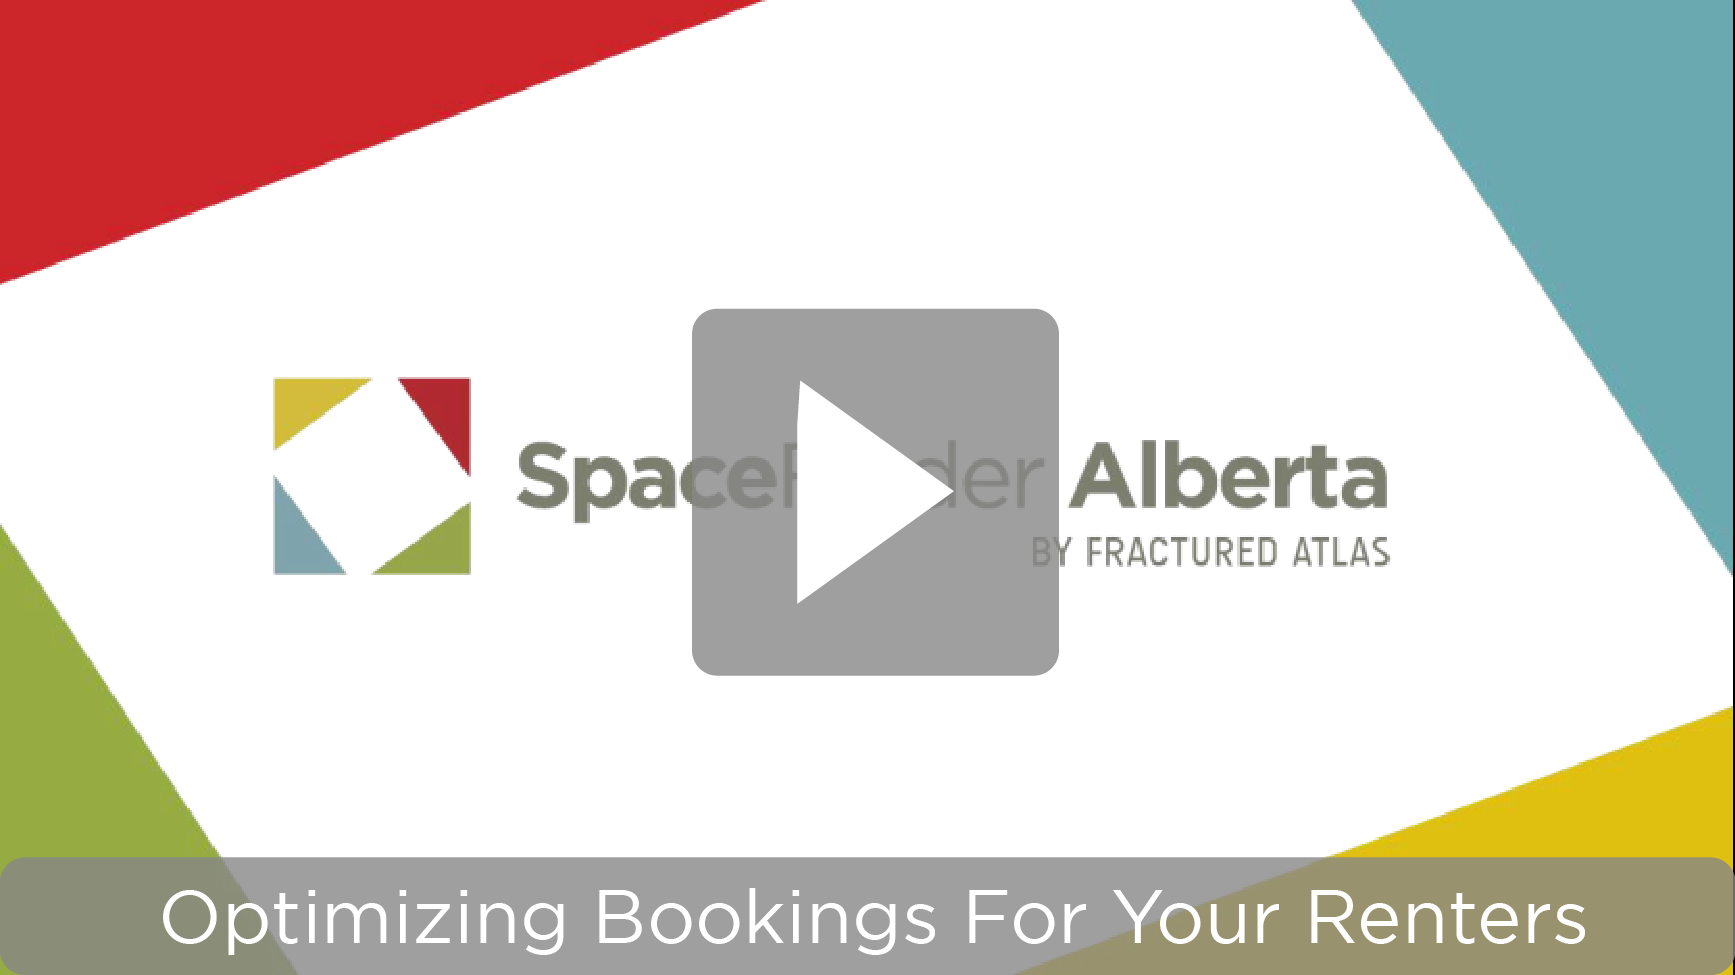 Video link – Optimizing Bookings For Your Renters